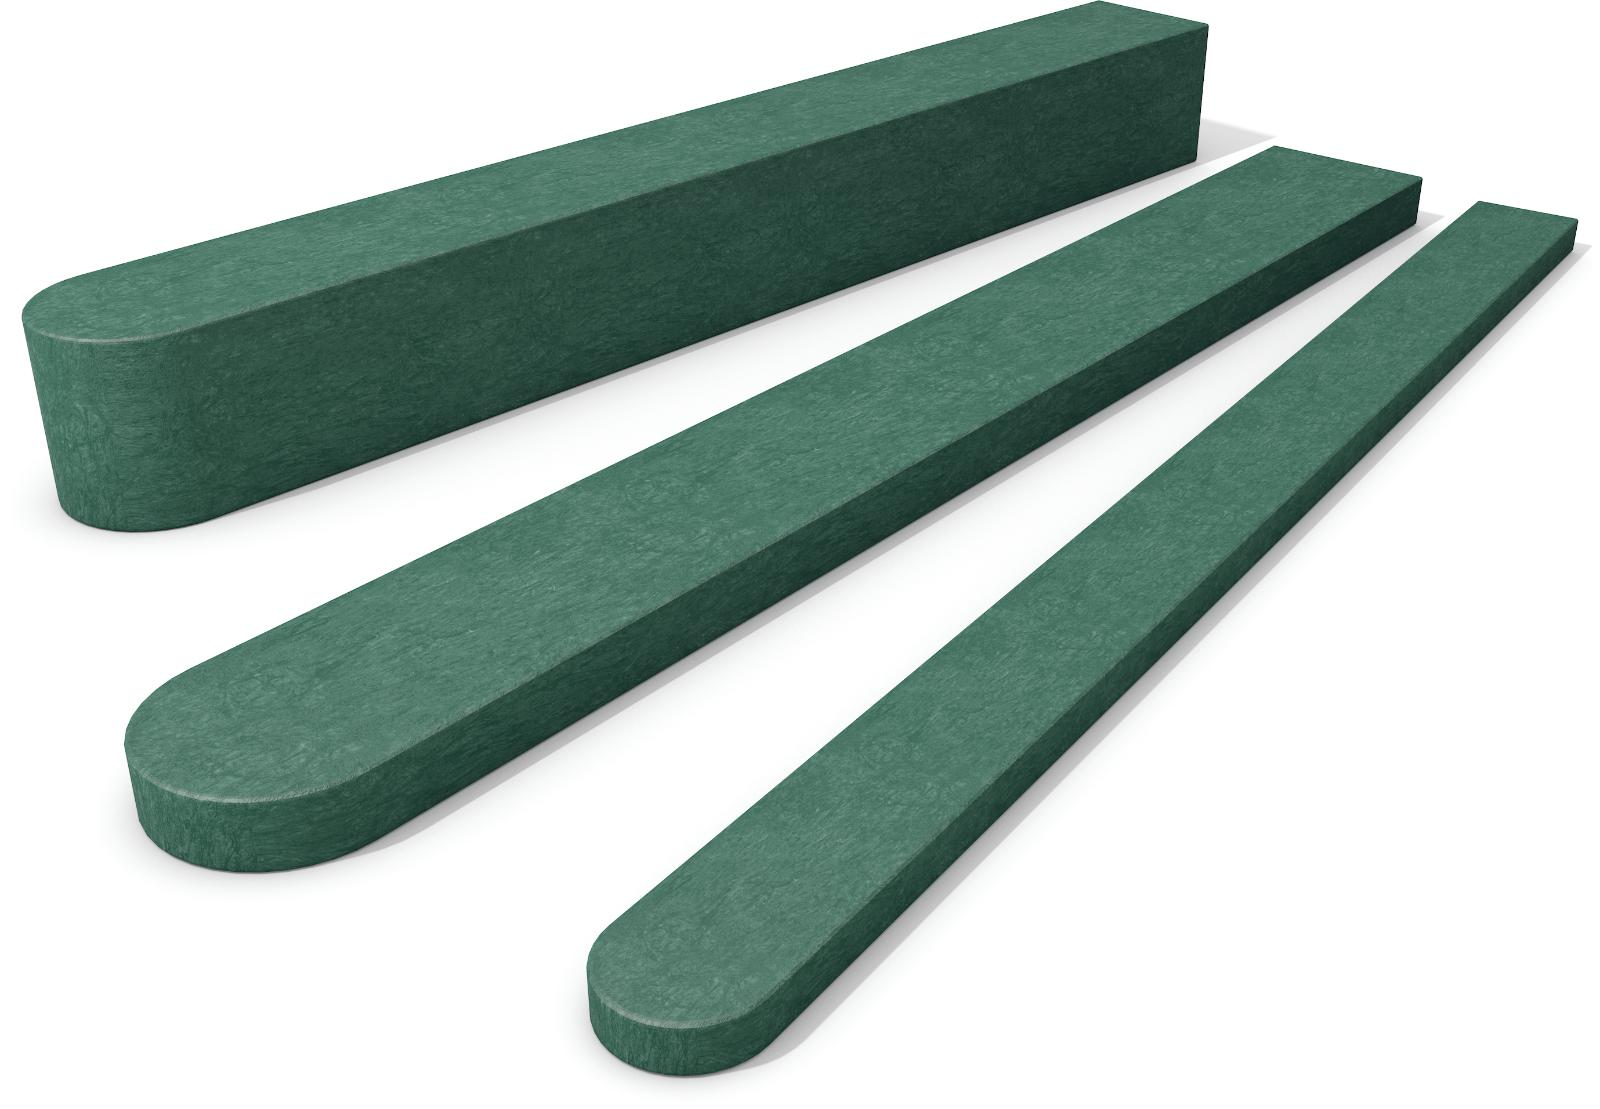 Fence Pale with Round End Green 20mm x 60mm x 1200mm